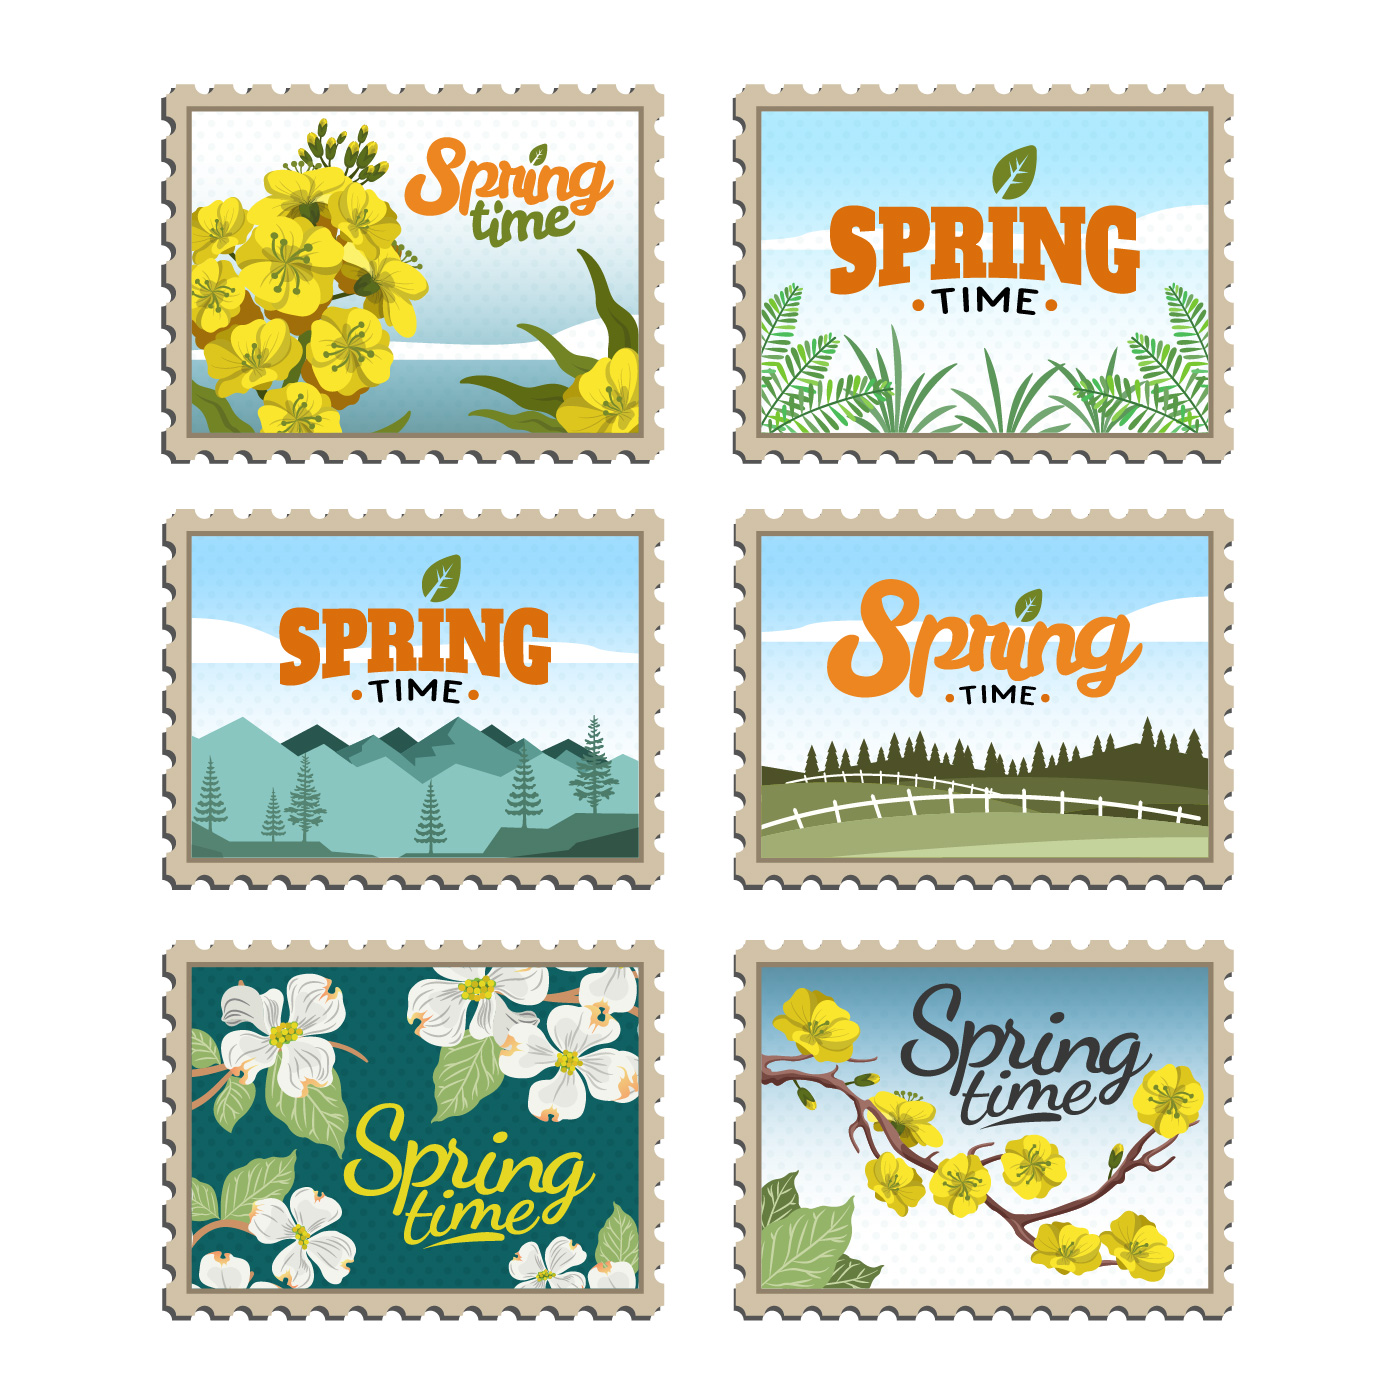 Springtime Postage Stamps Vector Collection - Download ...